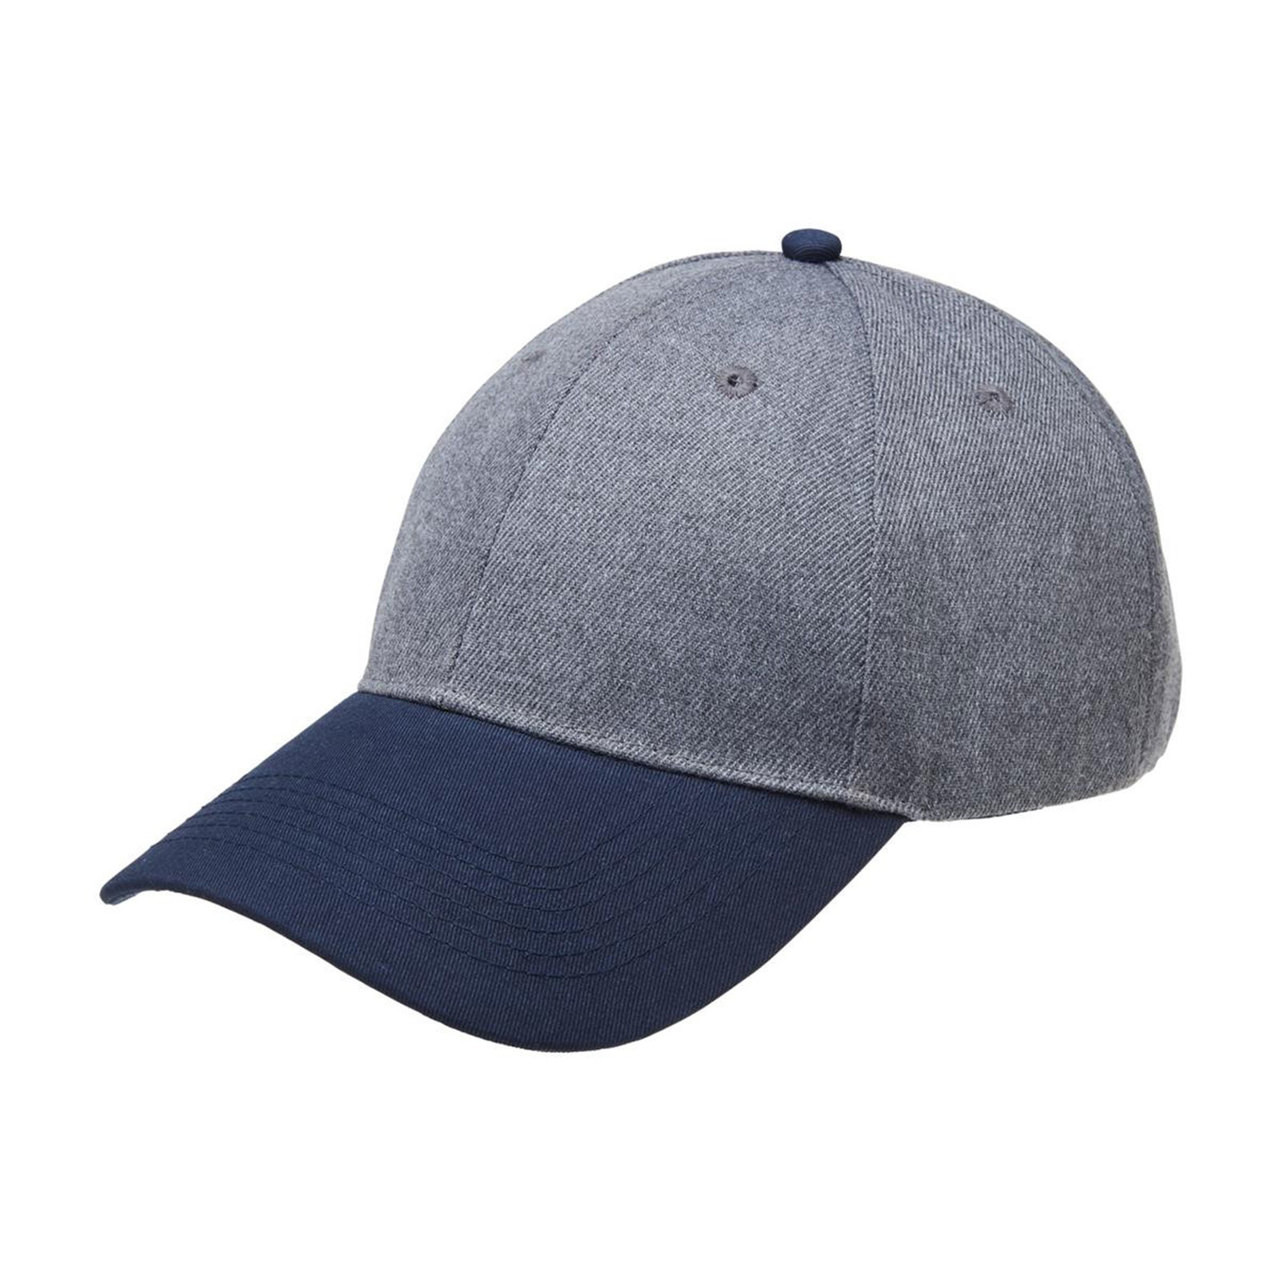 Wholesale Heathered Two Tone Curved Baseball Caps  05a72b9ca28